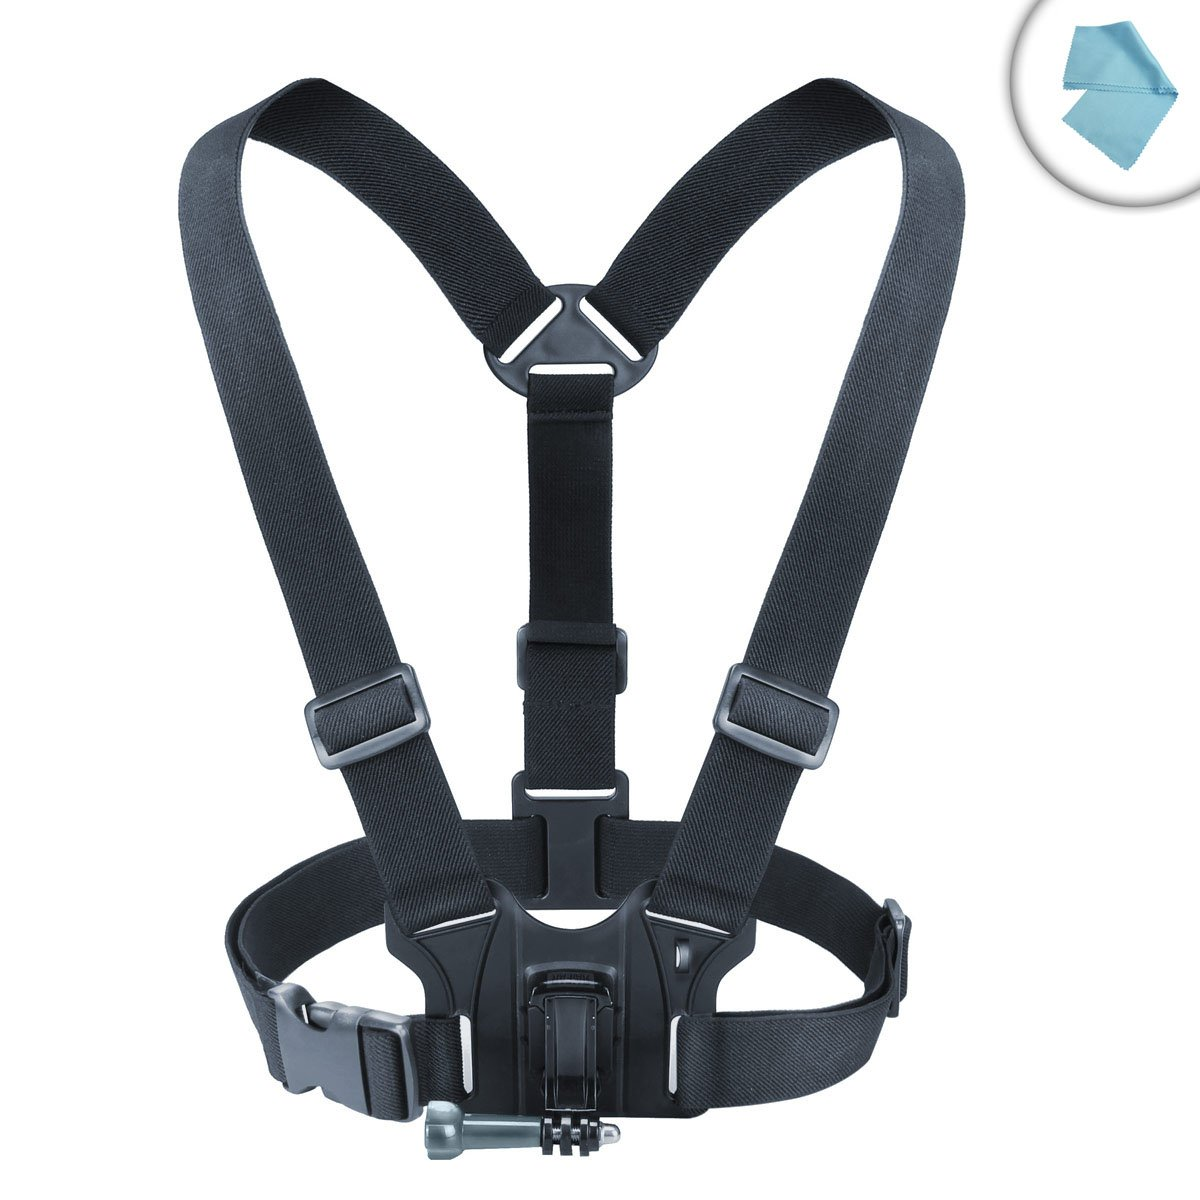 715bnVzS2OL._SL1200_ amazon com action cam adjustable chest mount harness with elastic